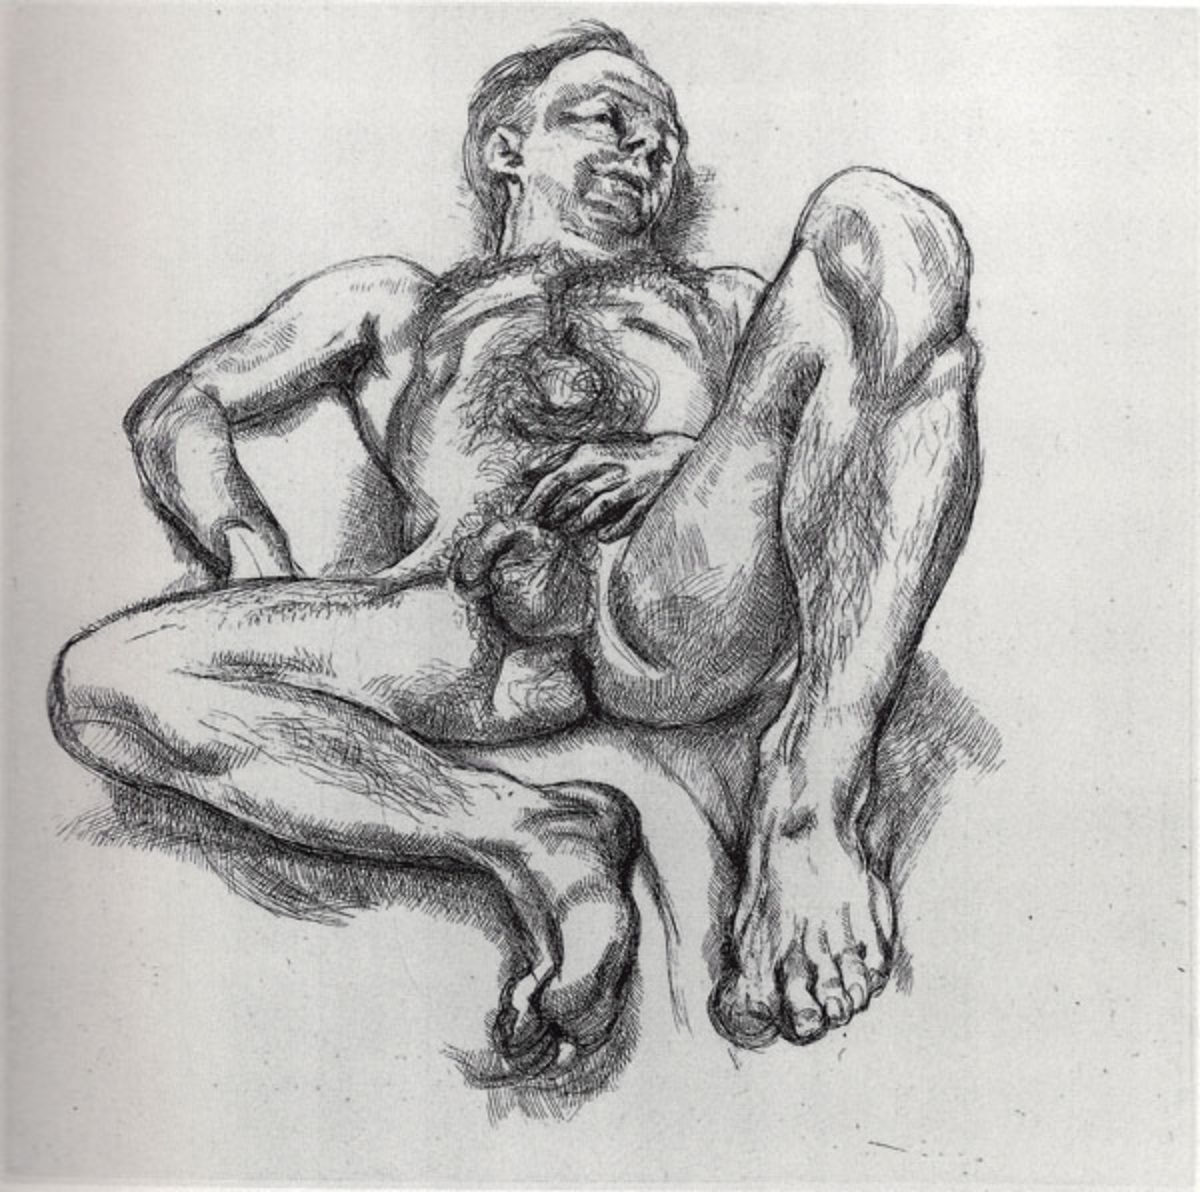 FREUD Naked Man On A Bed 1990